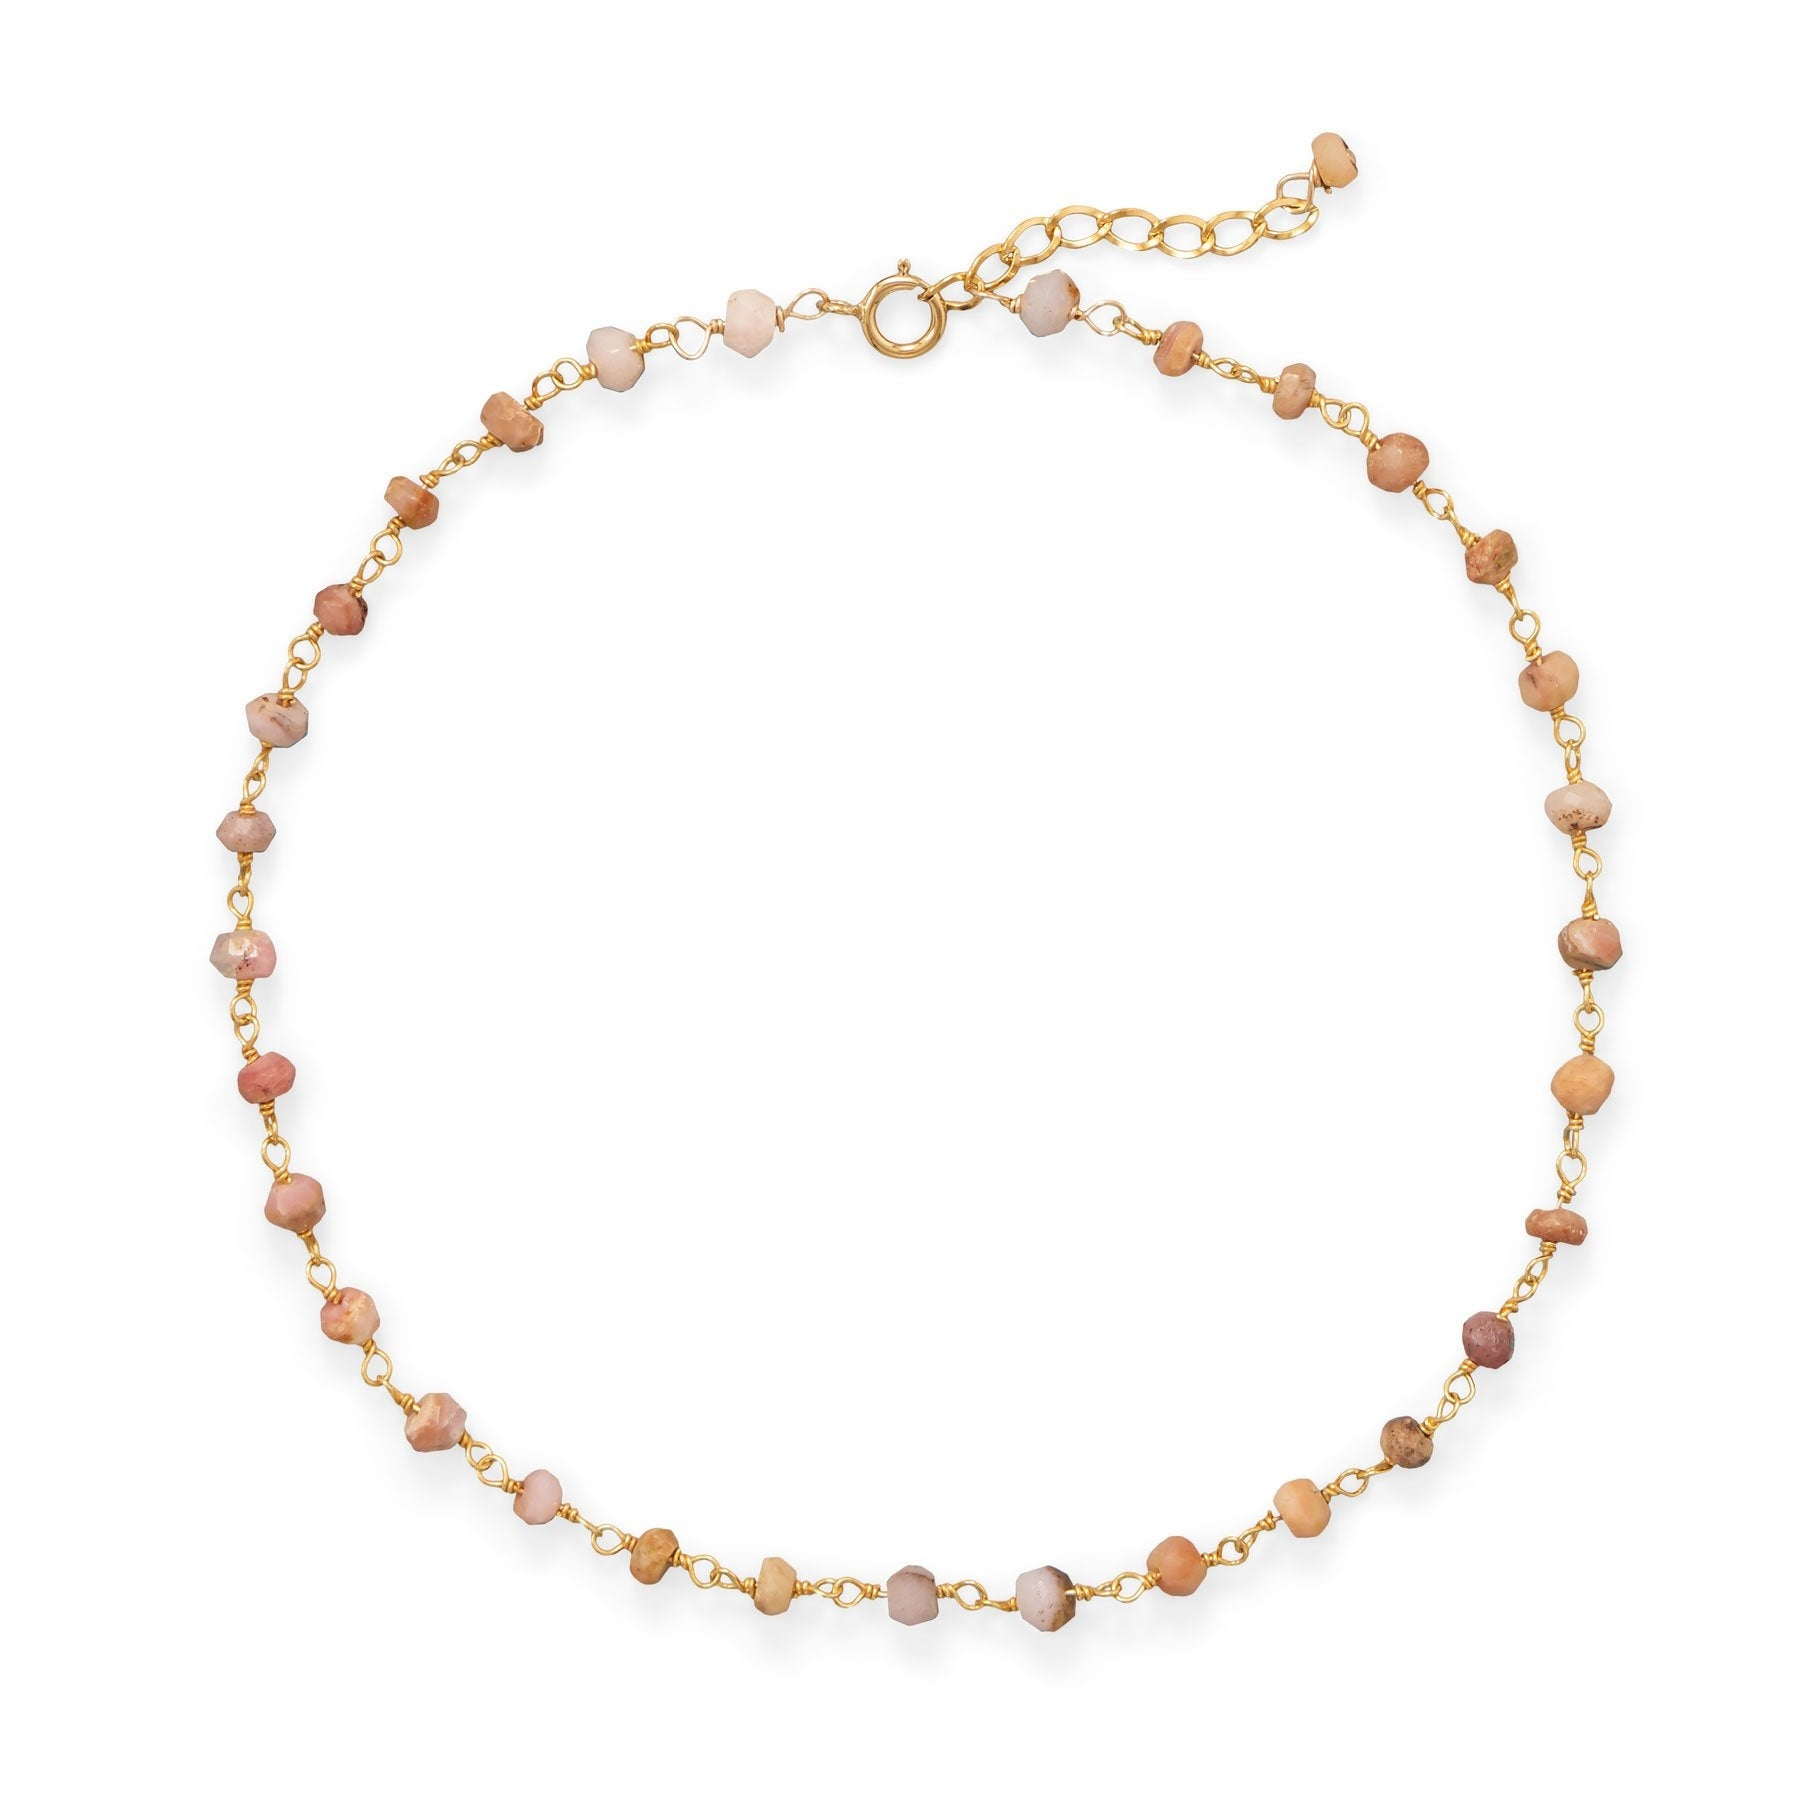 Two Year Warranty Gold Overlay with Multicolored Stones 10 Inch Link Chain Anklet